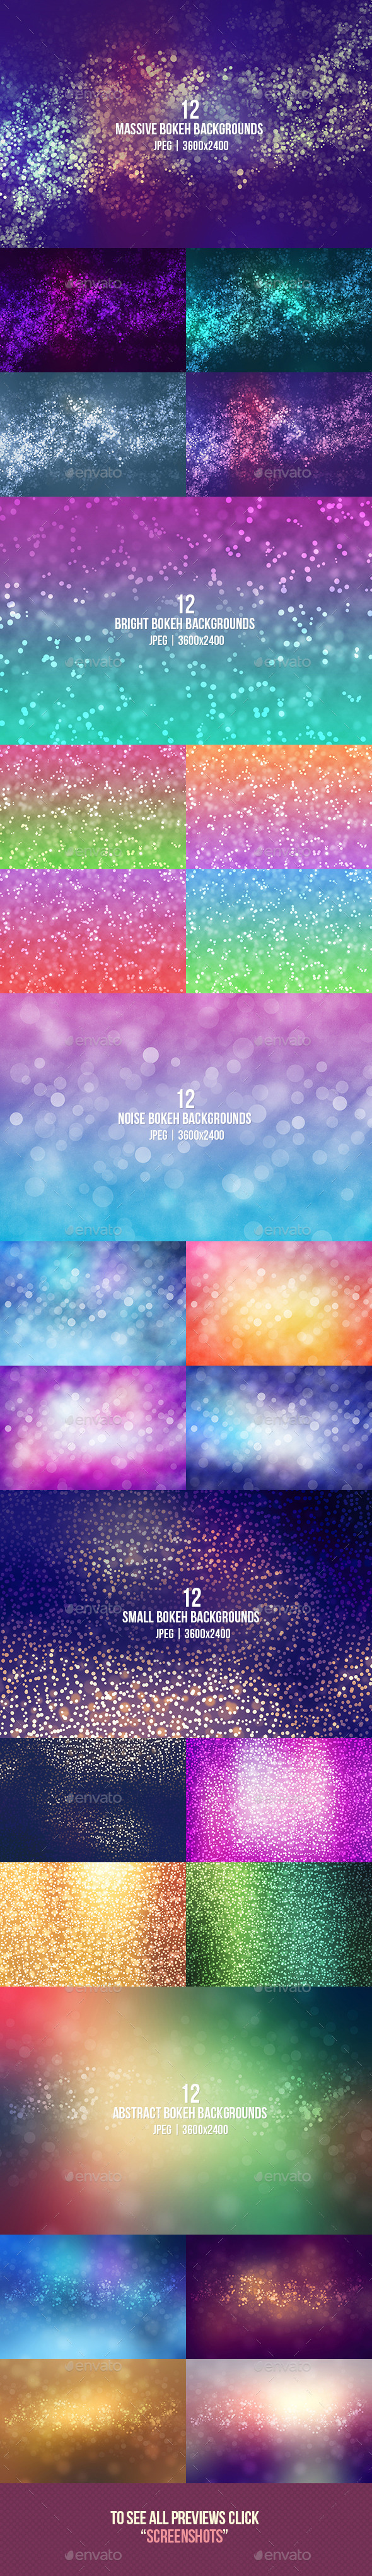 Bokeh Backgrounds Bundle - Abstract Backgrounds